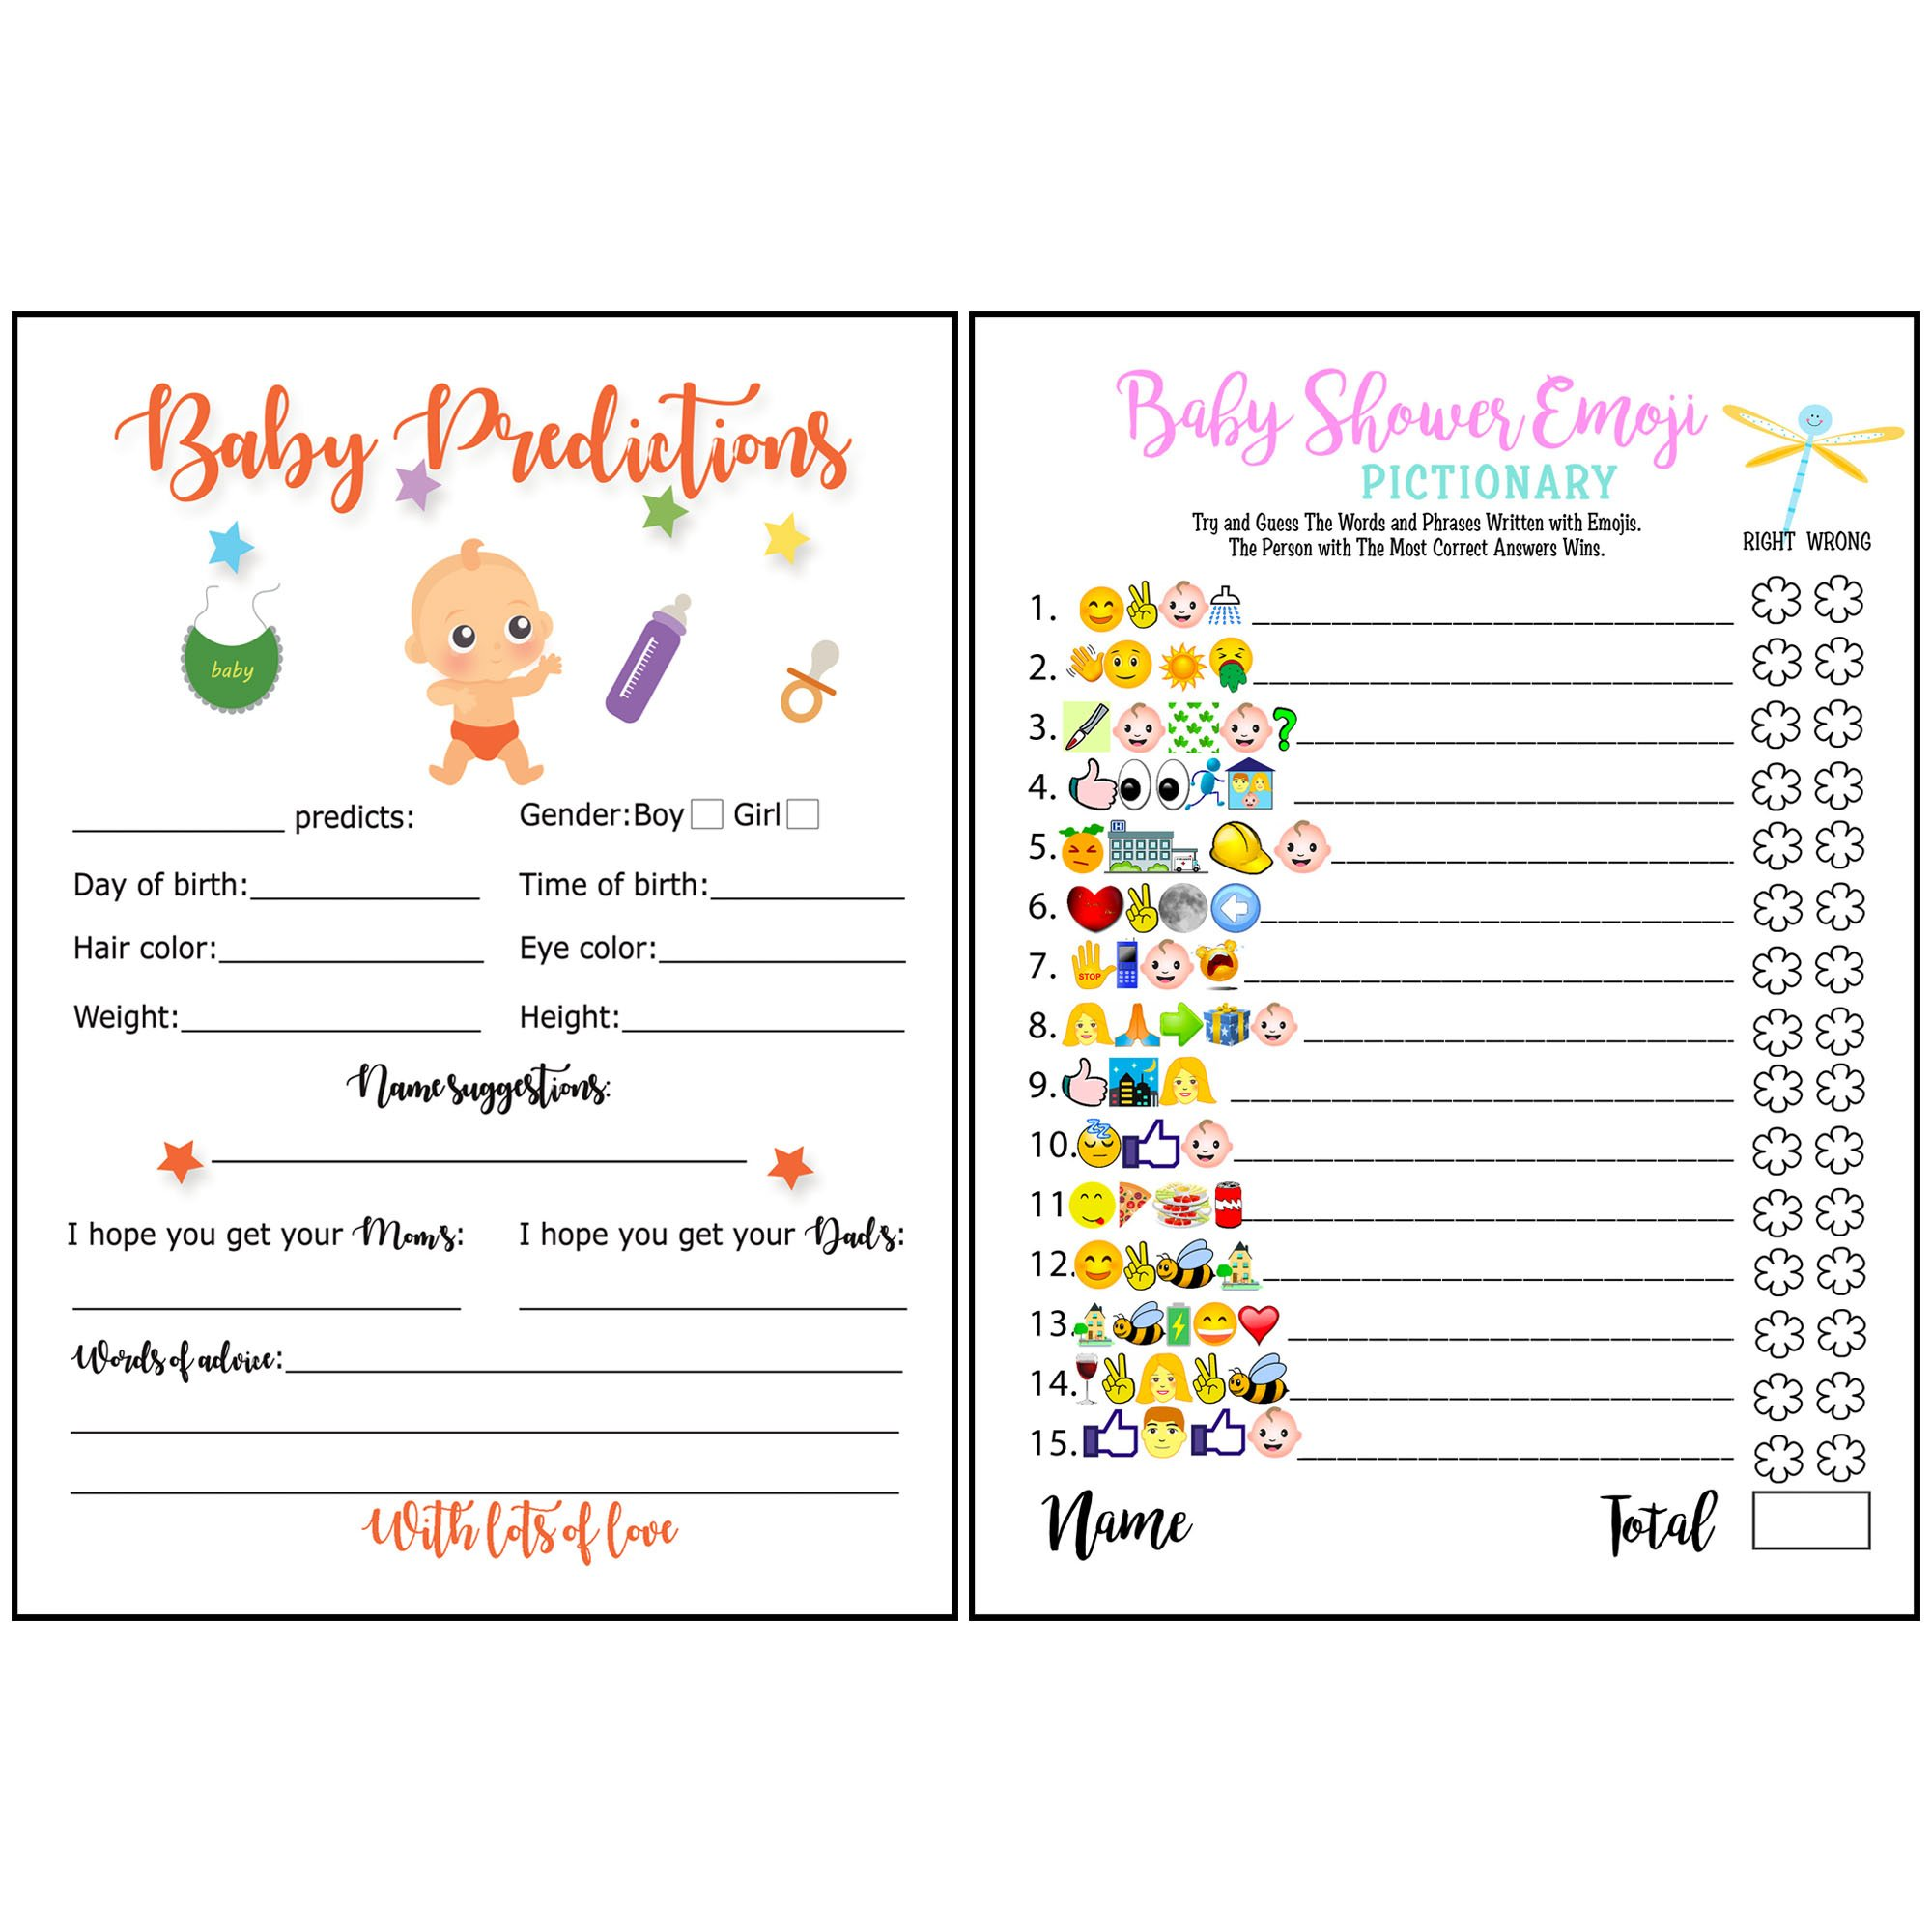 Baby Shower Games - Emoji Pictionary and Advice Prediction Cards, Fun Game for Girls Boys Gender Neutral Ideas for Shower Party, Prizes for Game Winners, Favorite adults Games for Baby Shower